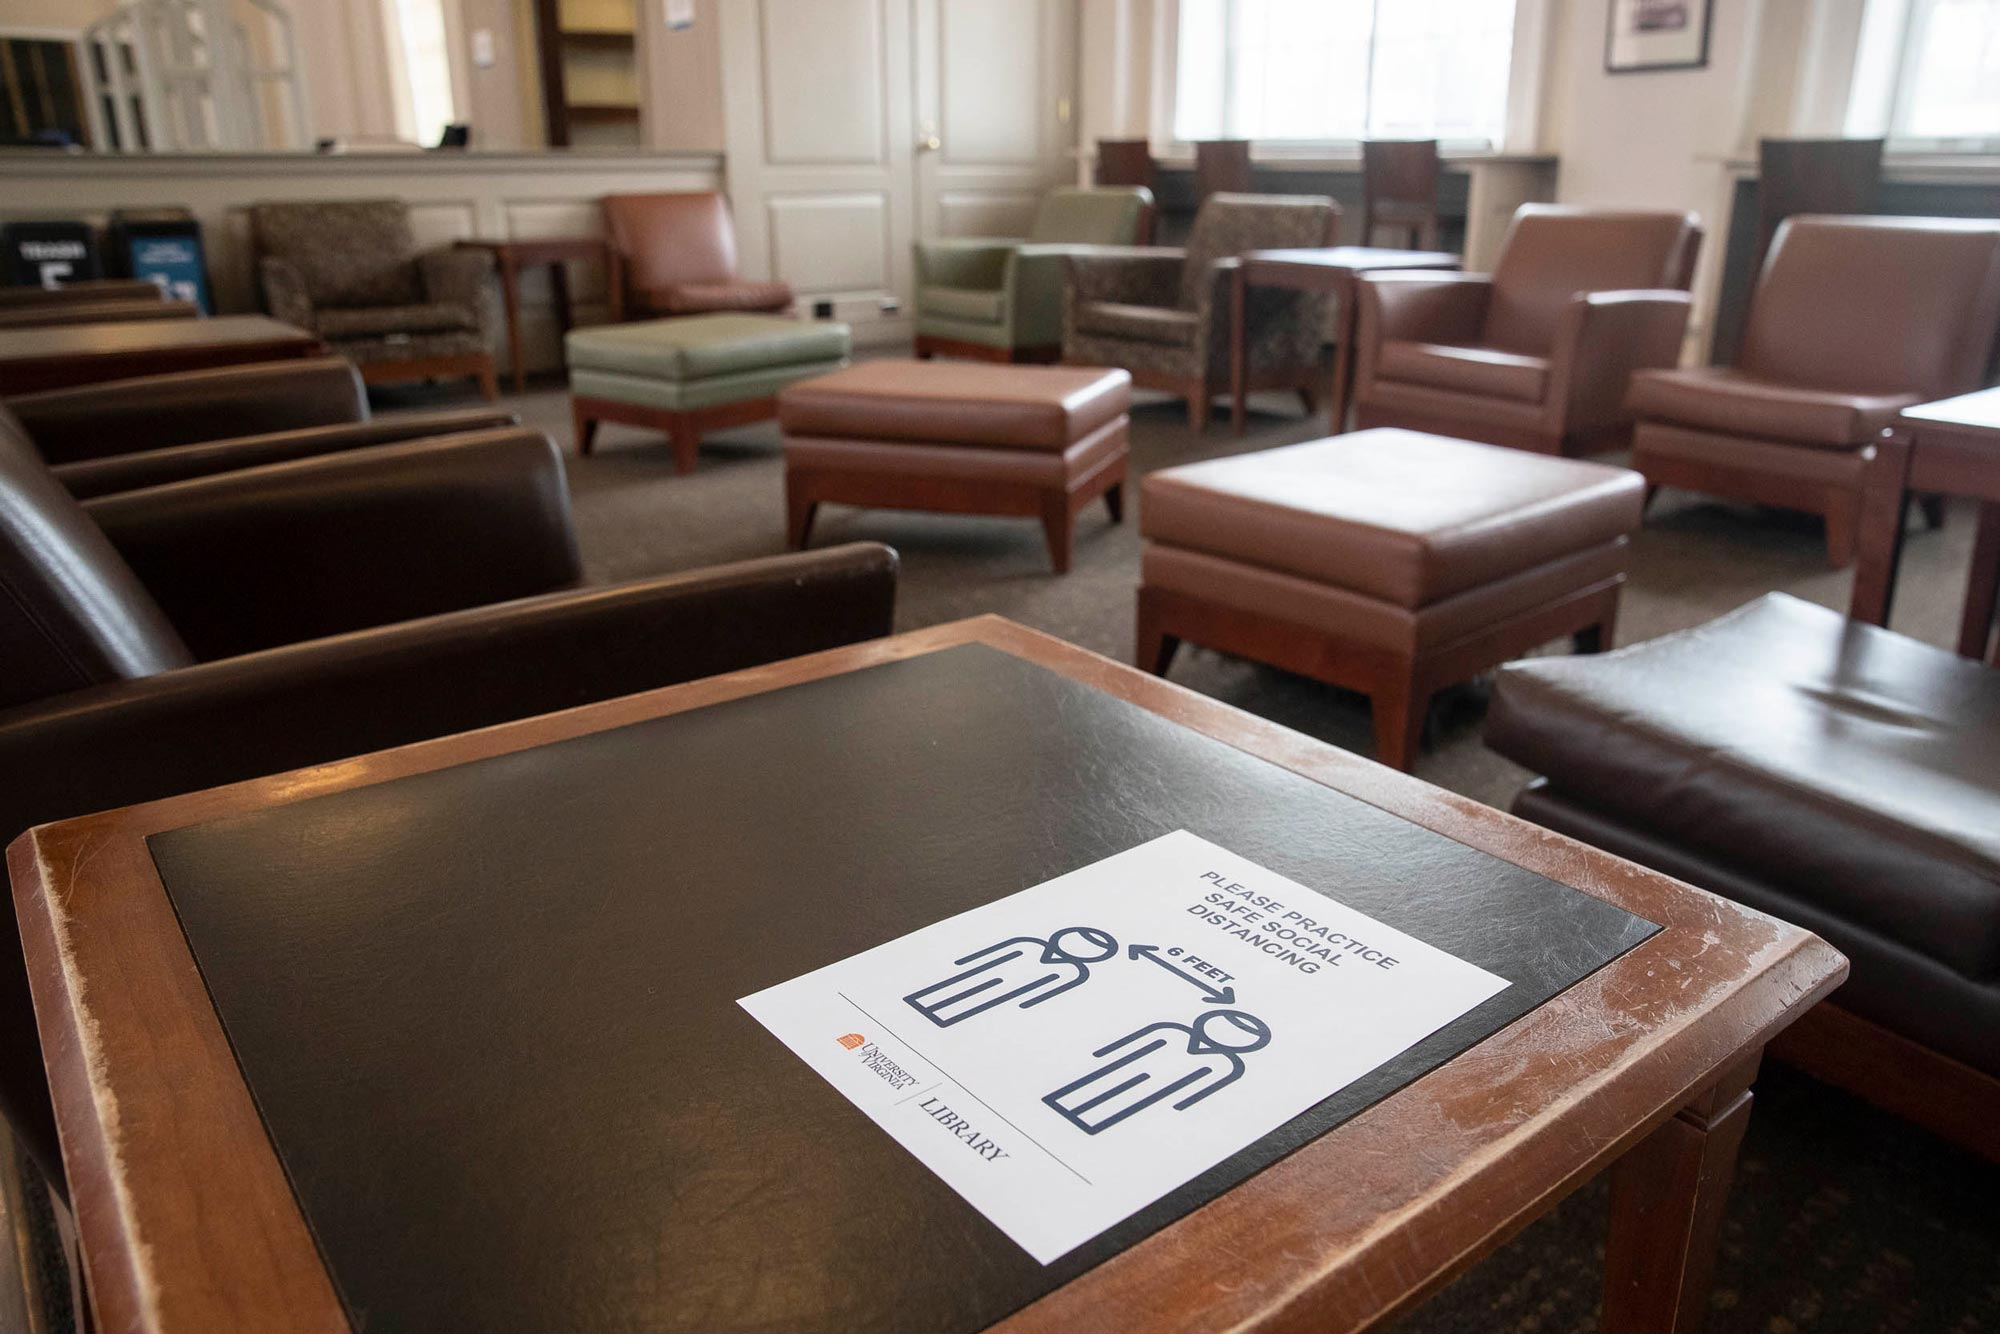 Around Alderman staff have posted reminders about safe social distancing on tables; however, the normally popular lounge remained empty.